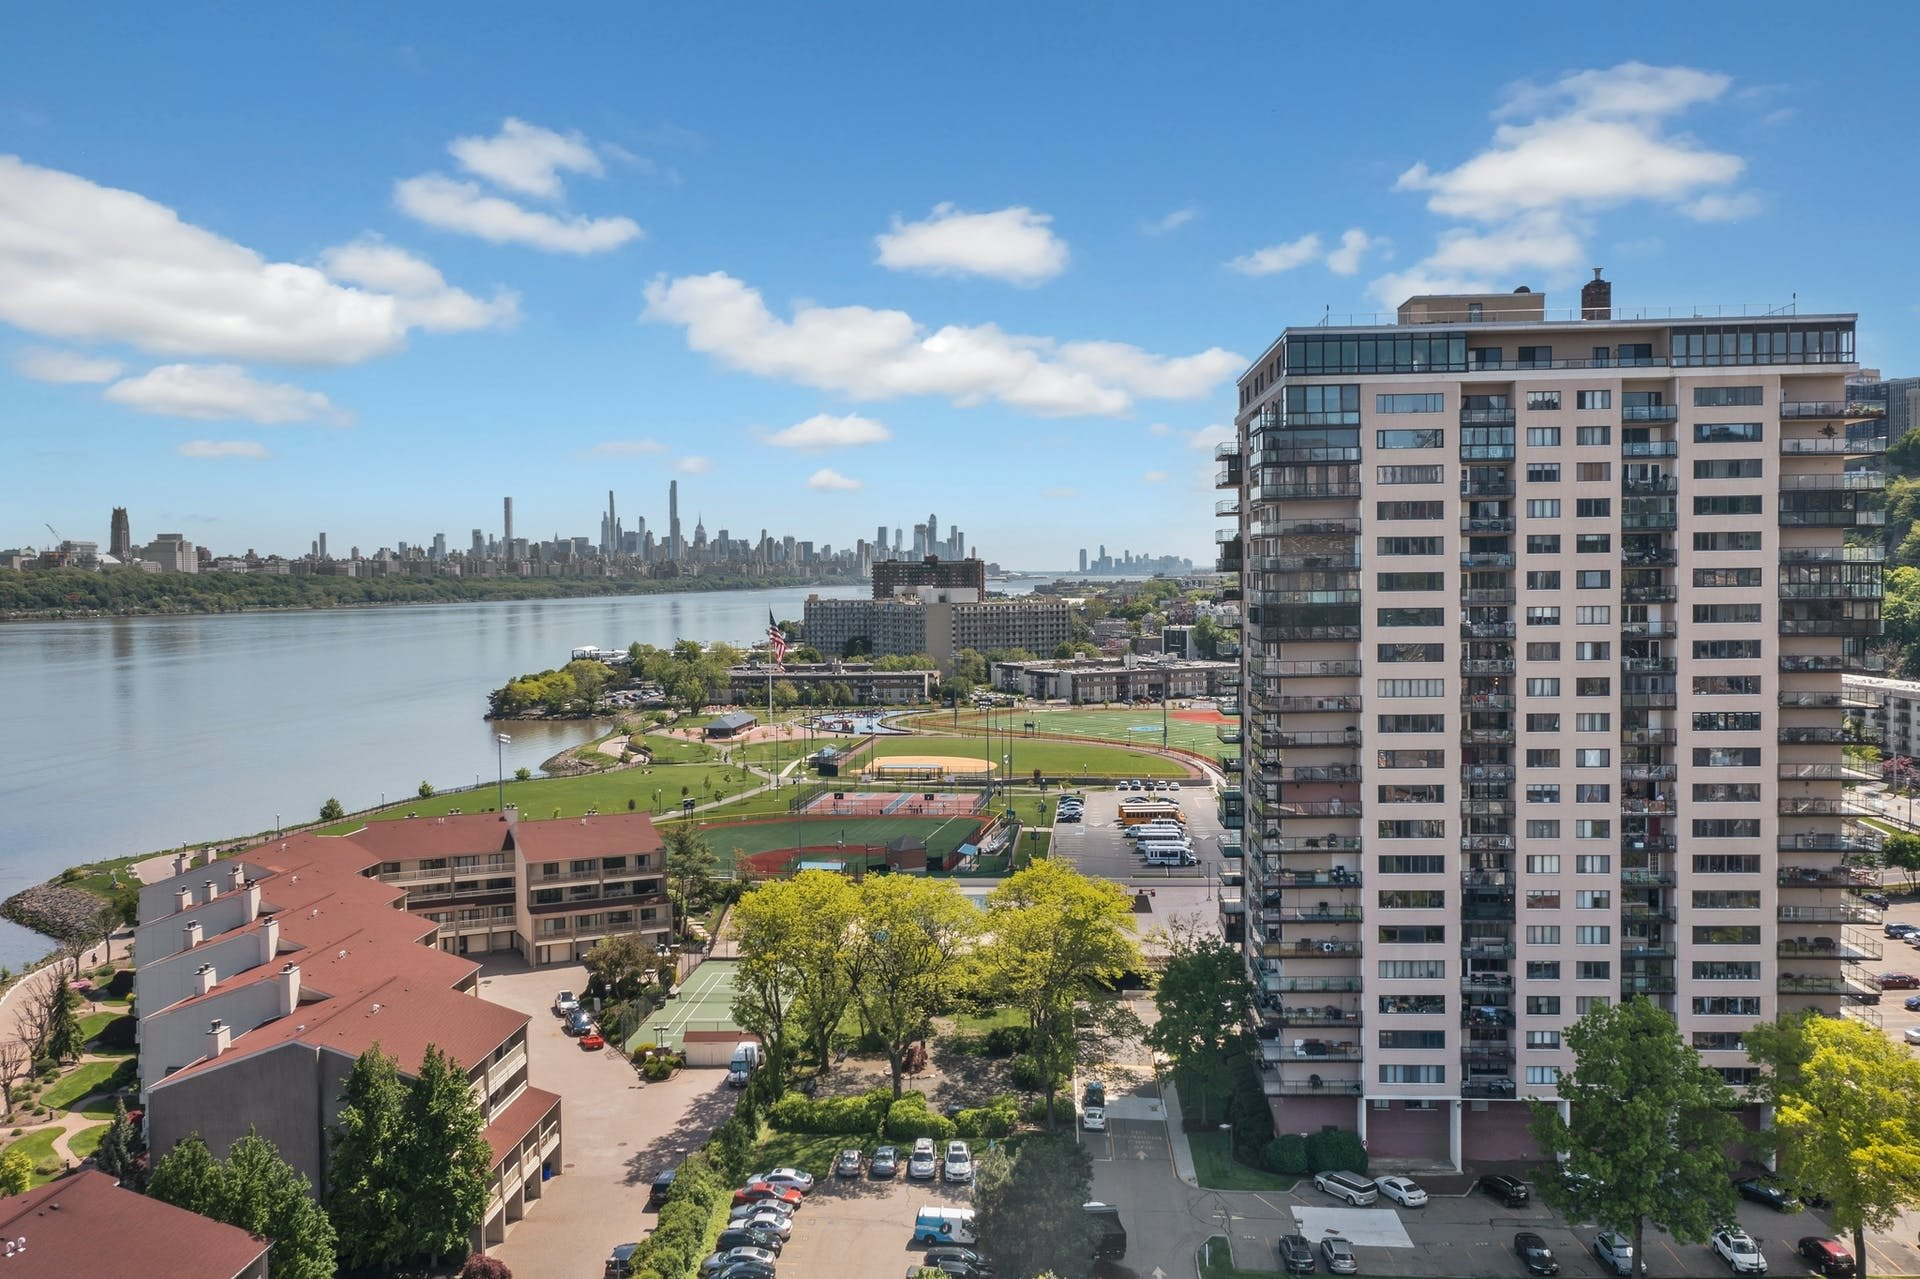 Condo in Edgewater, New Jersey, United States 1 - 11494811